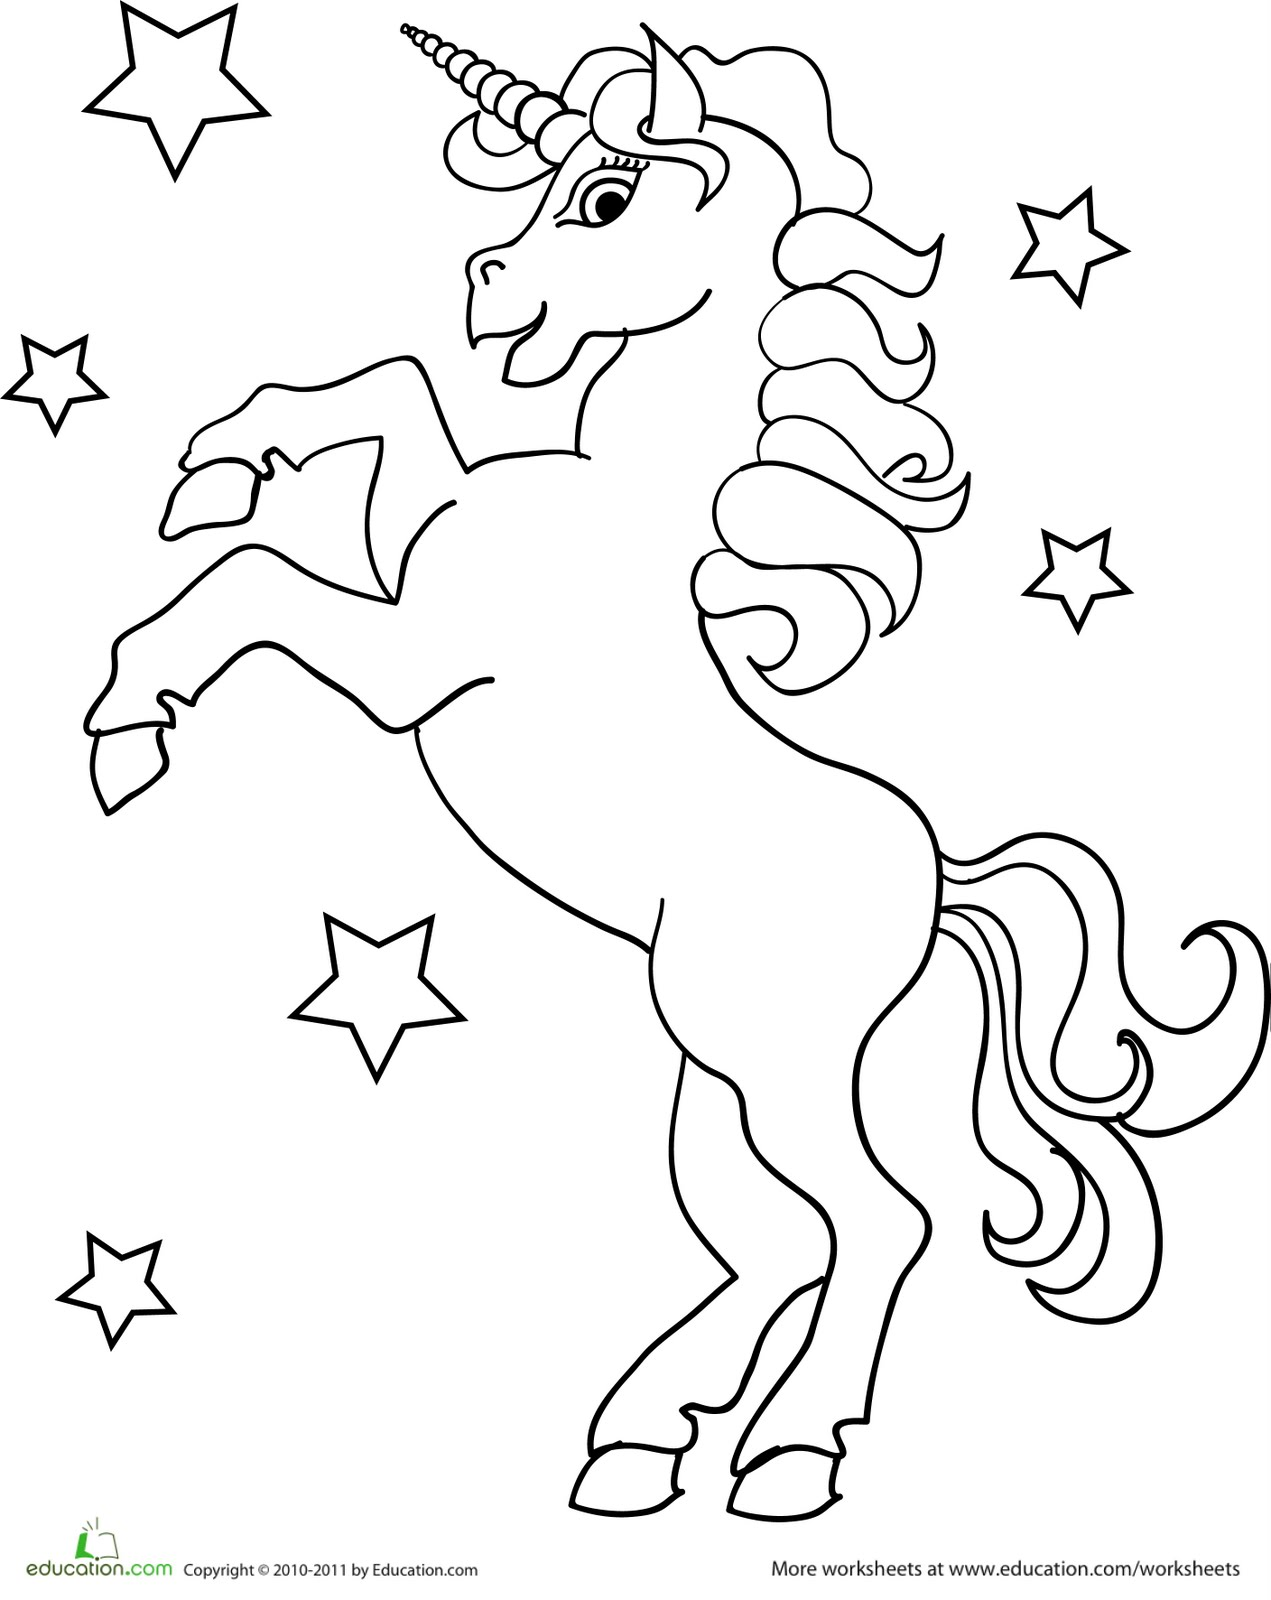 Flying+unicorn+coloring+pages+for+kids